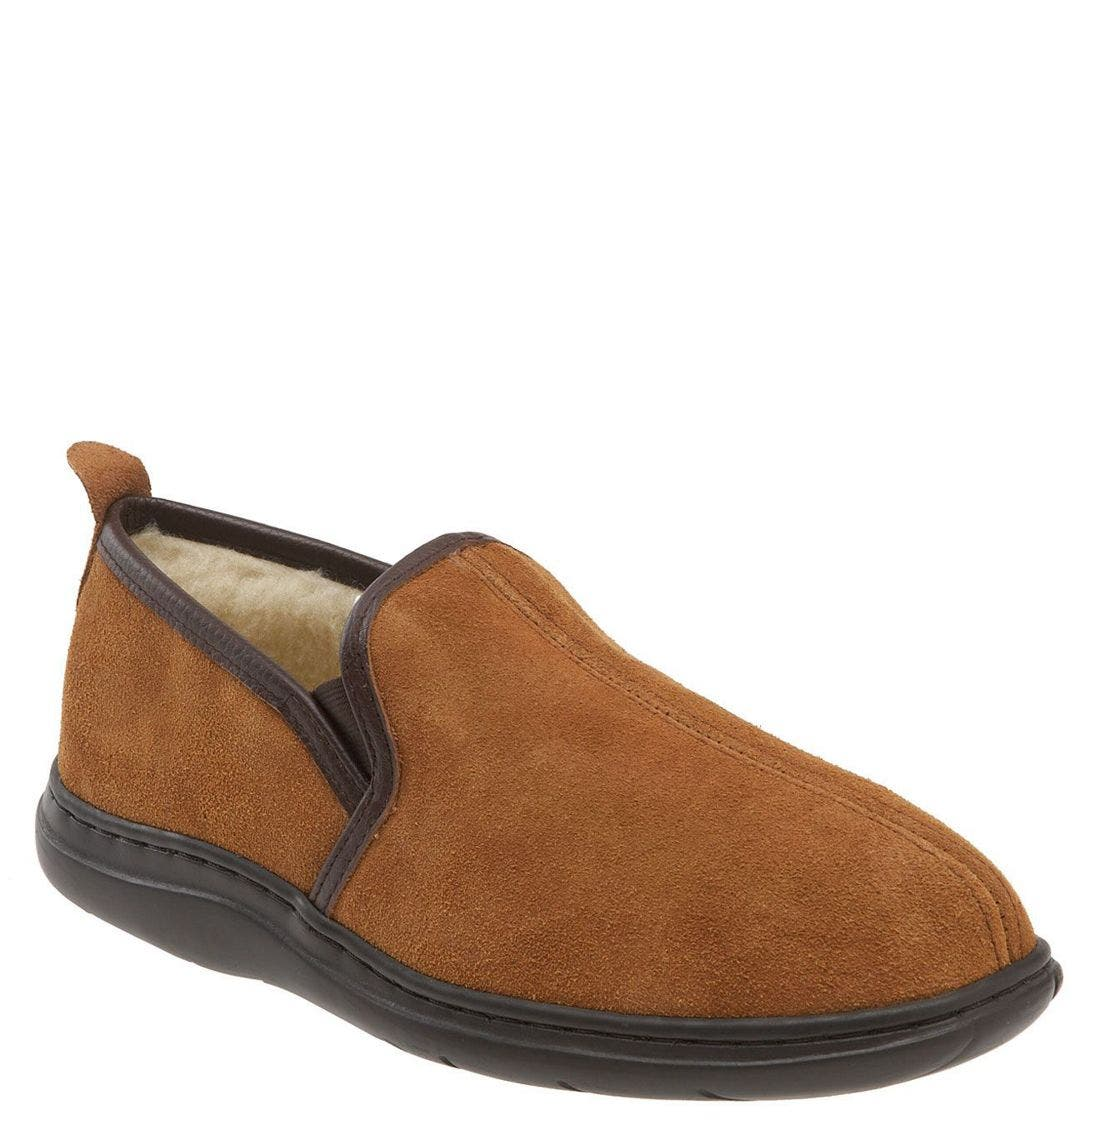 Alternate Image 1 Selected - L.B. Evans 'Klondike' Slipper (Online Only)